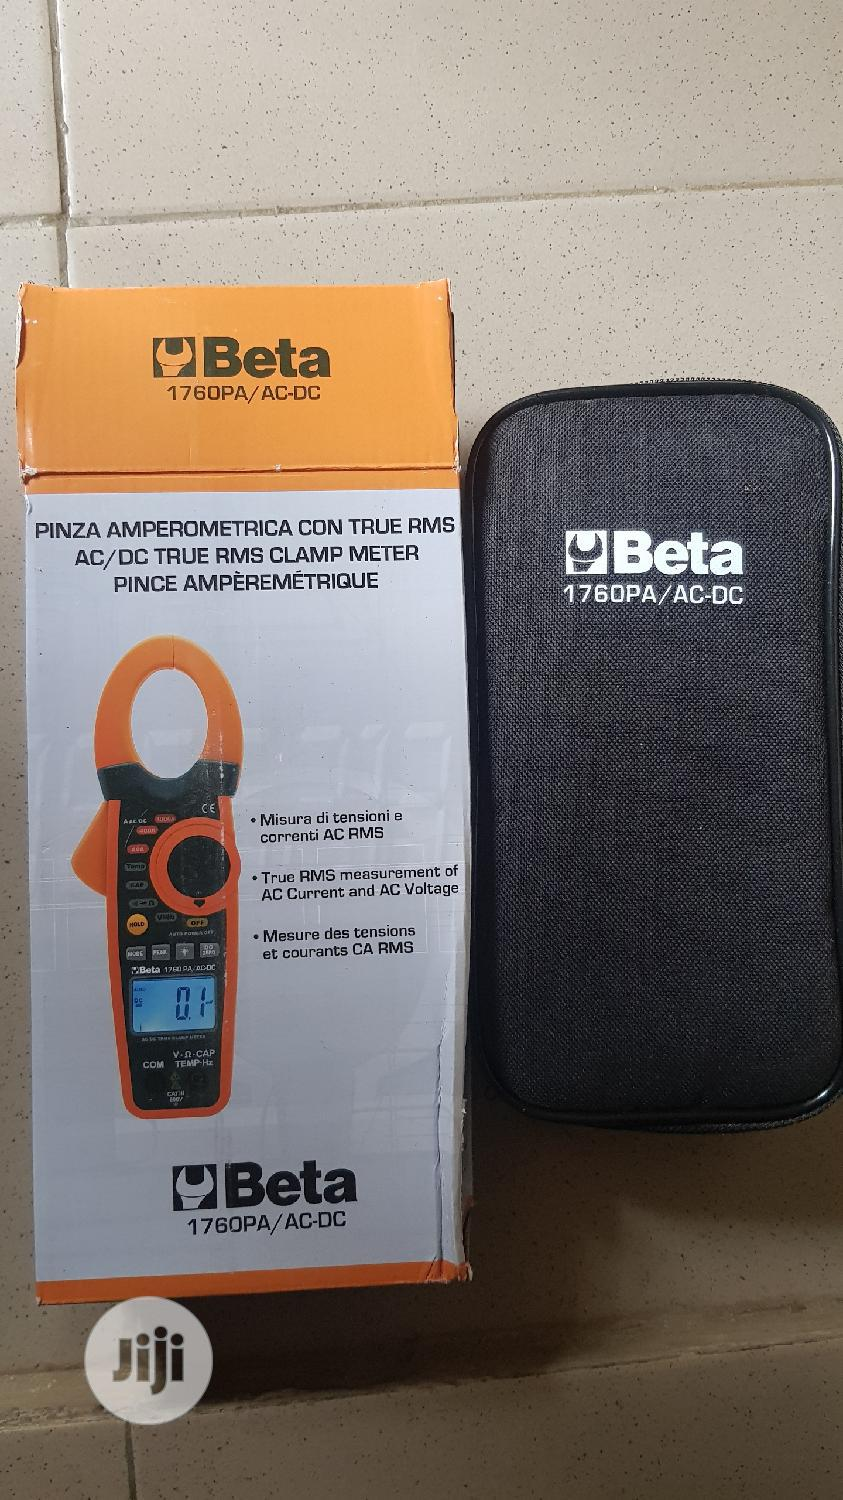 Beta Ac/Dc Digital Clamp Meter